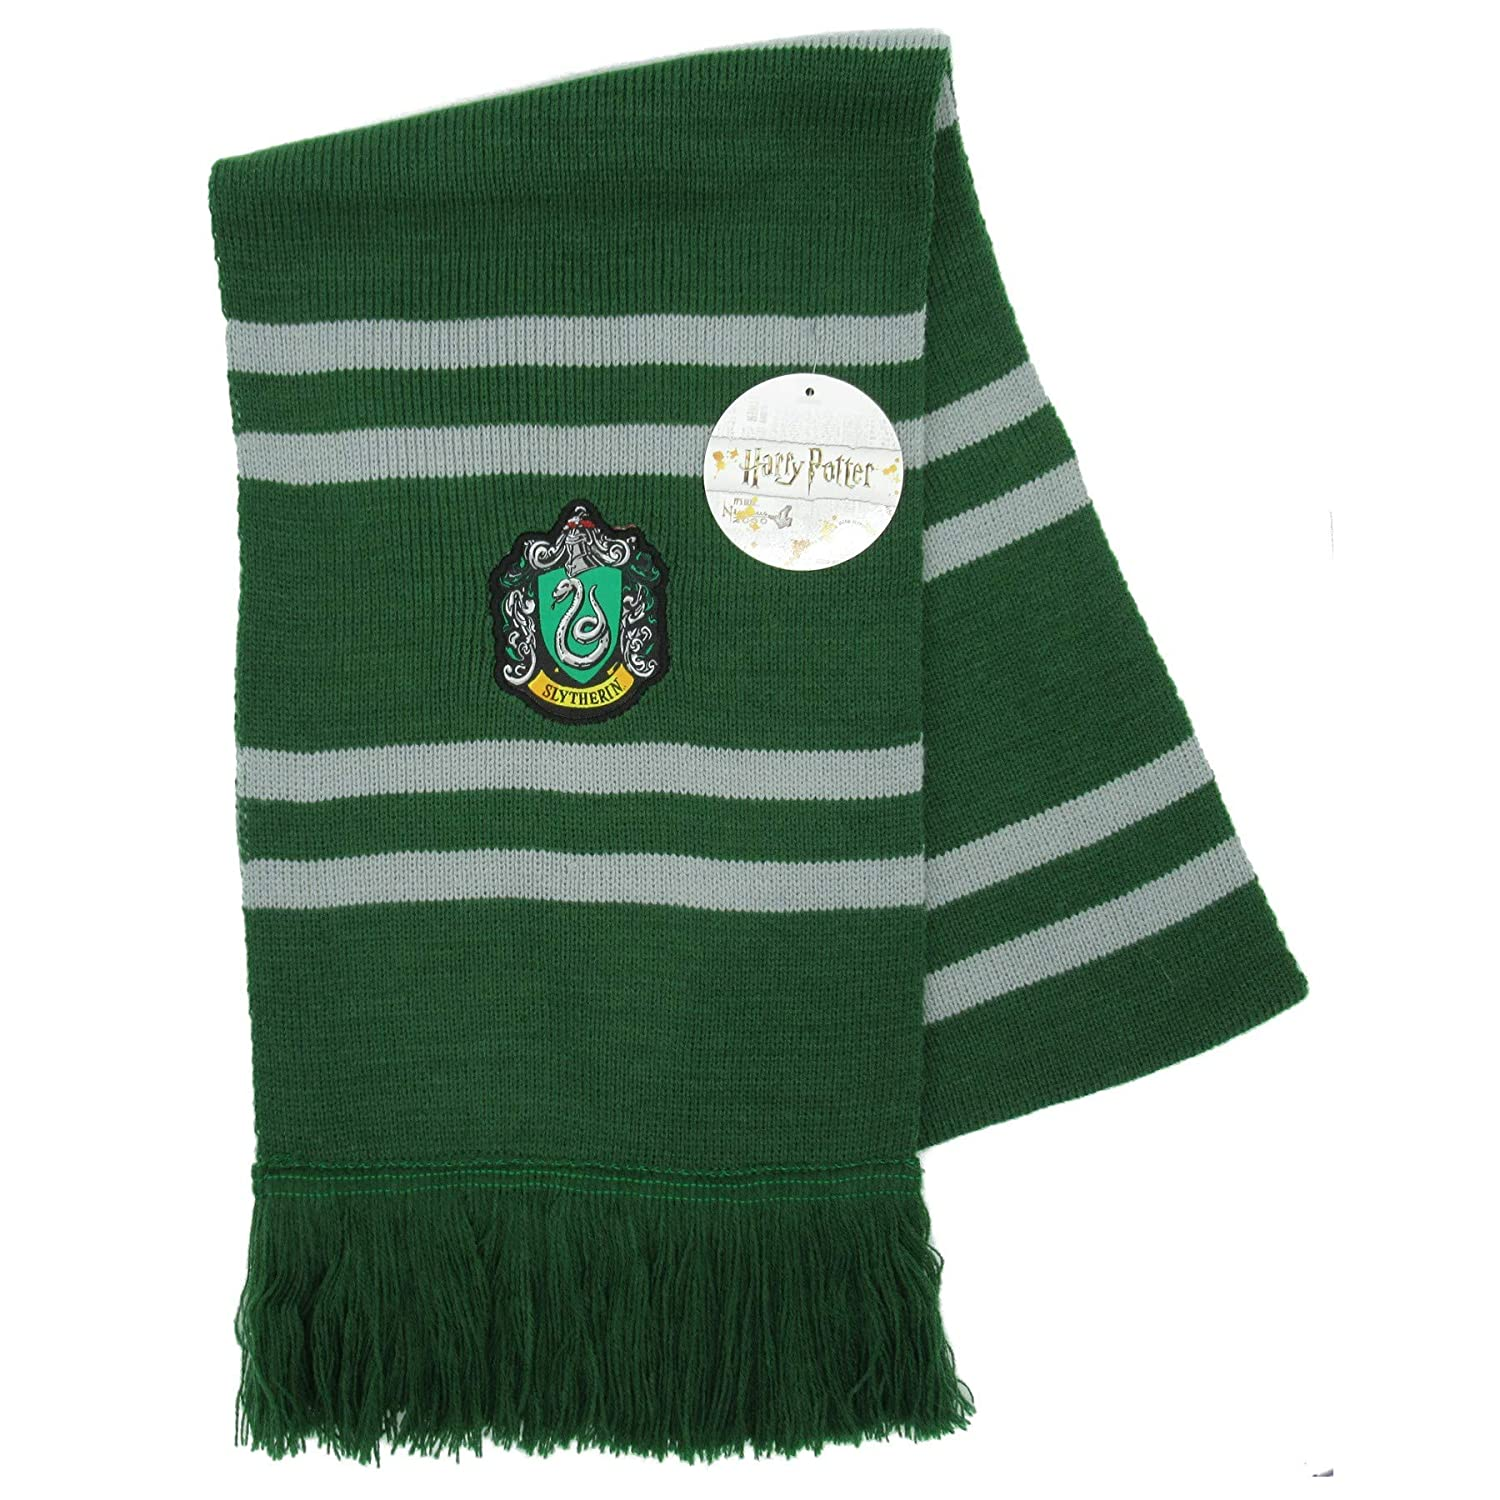 Harry Potter Bufanda Slytherin Ultra Suave - 100% Original Warner Bros